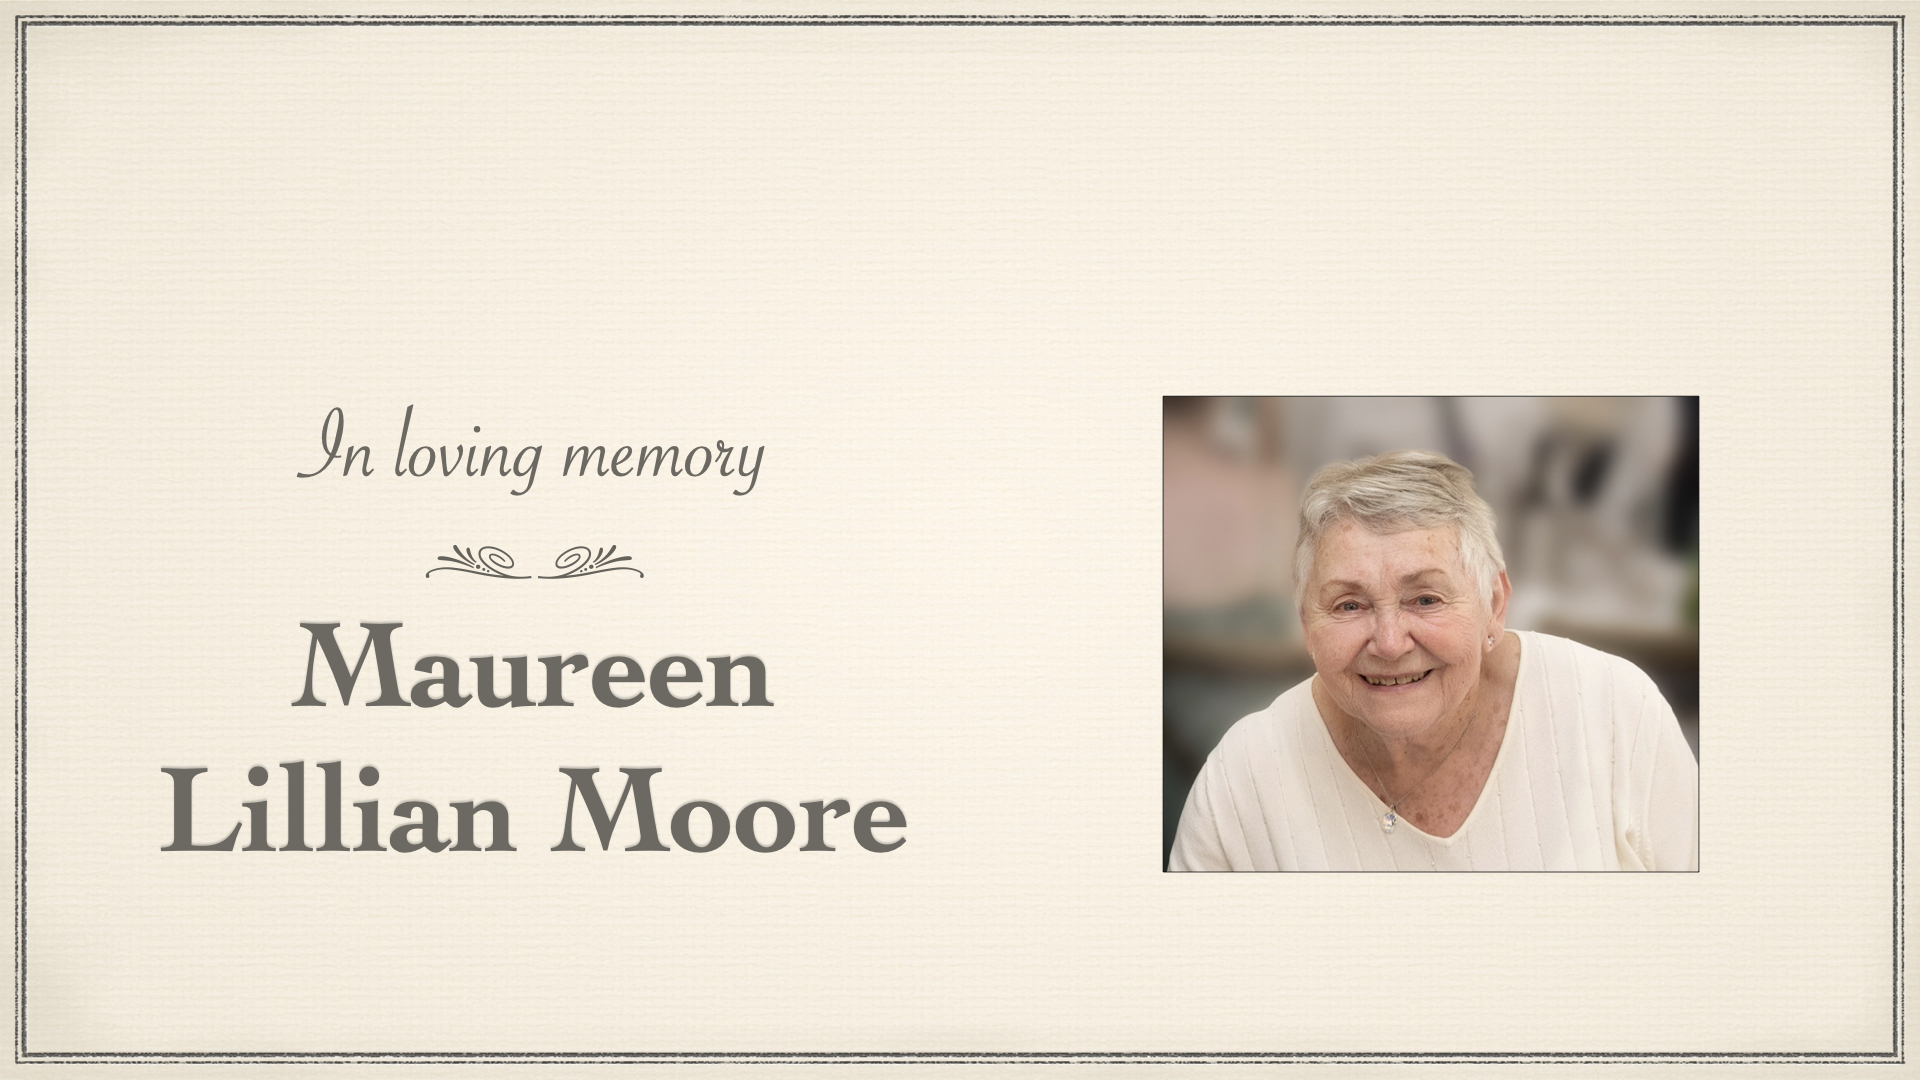 Funeral of Maureen Lillian Moore – Friday 30th April at 1pm